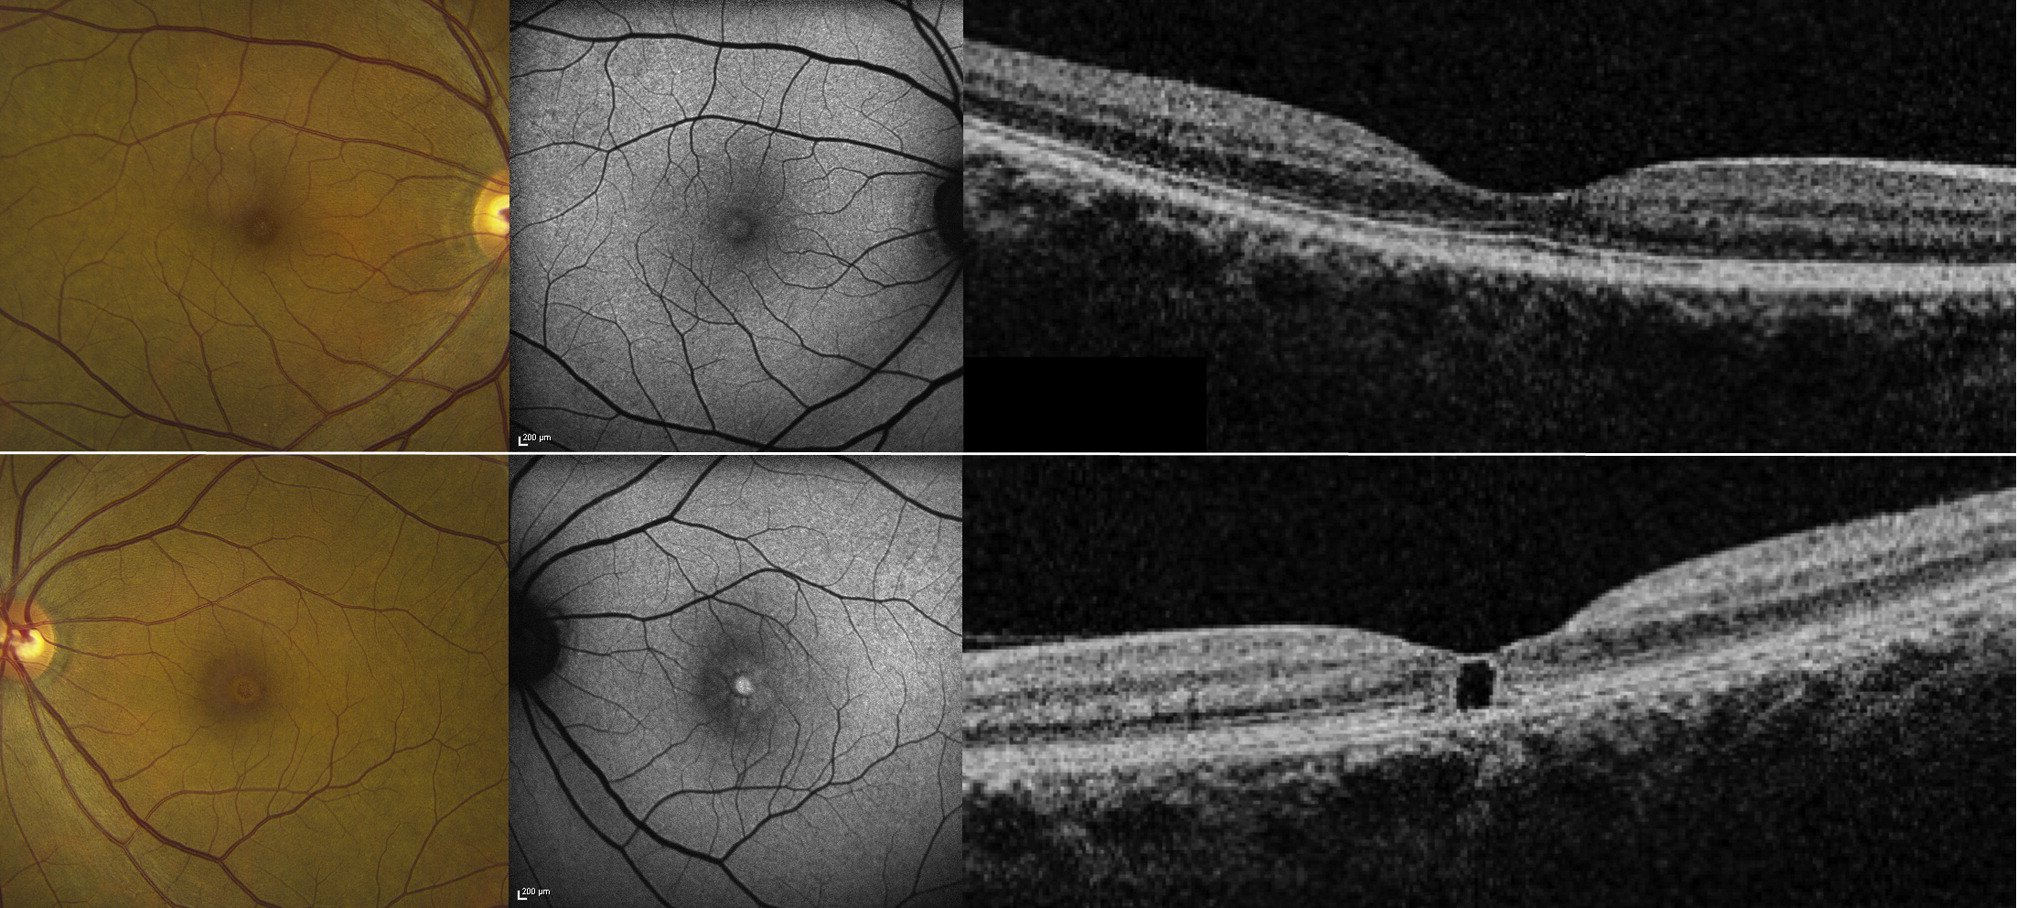 Pseudocystic Foveal Cavitation In Tamoxifen Retinopathy